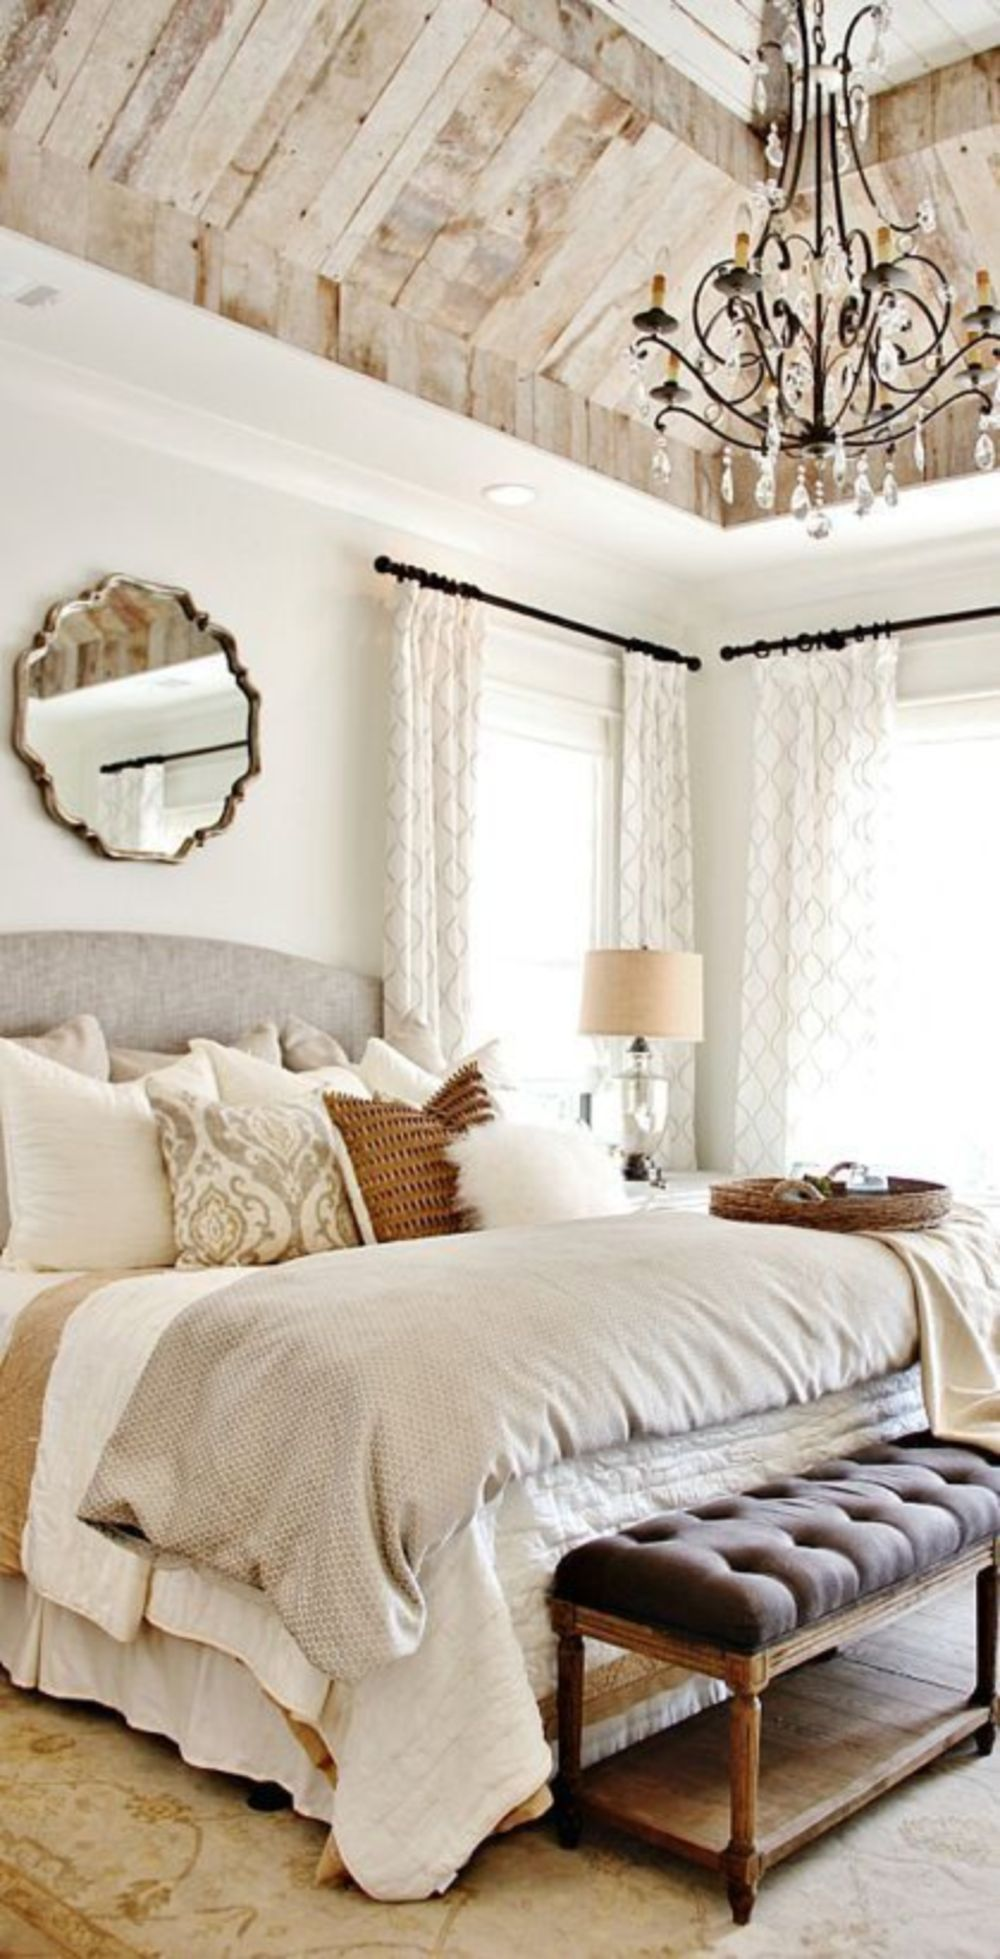 53 Beautiful Urban Farmhouse Master Bedroom Remodel